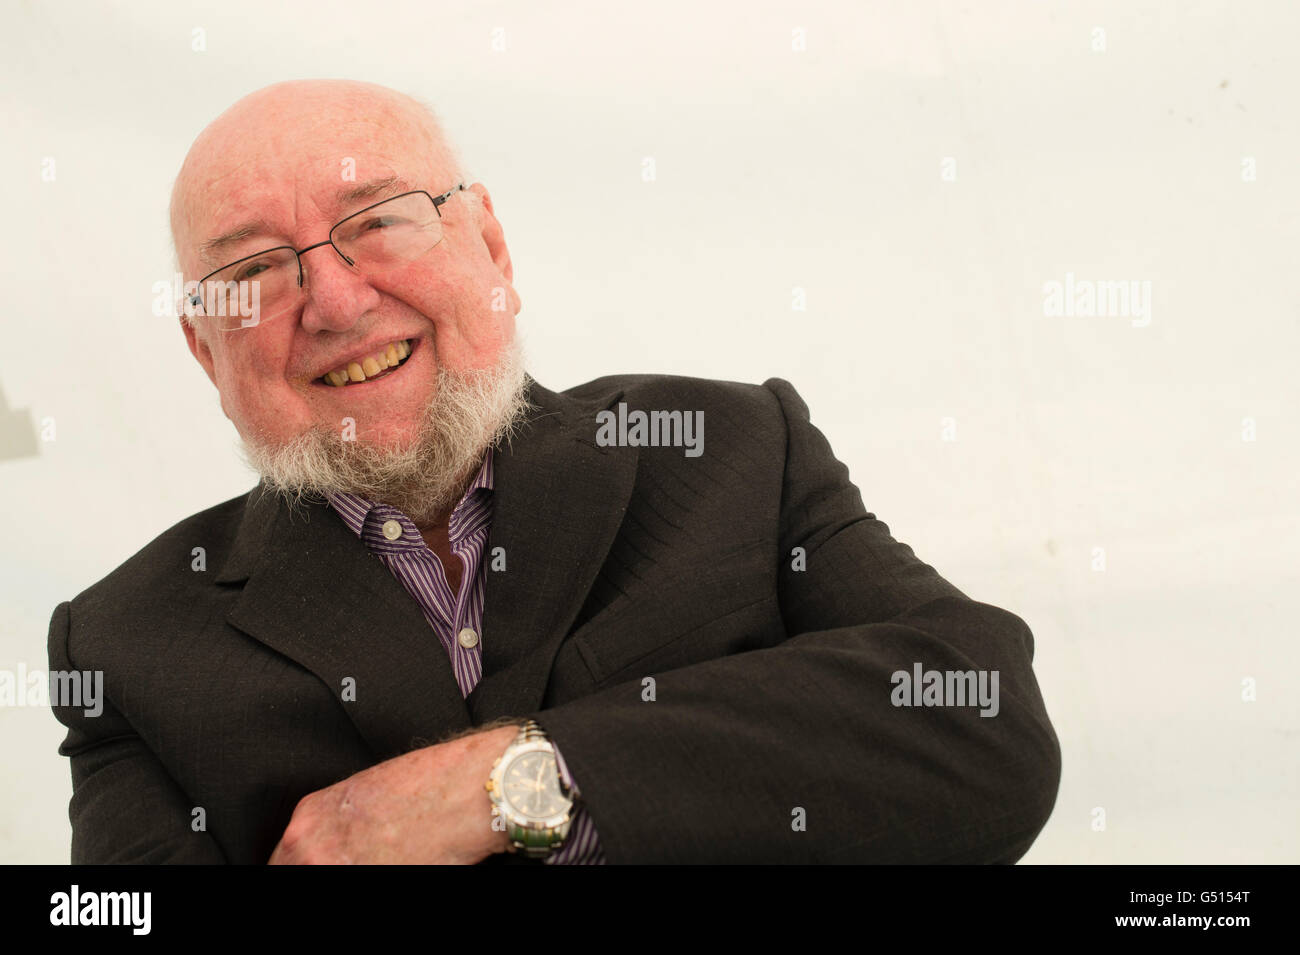 Thomas Keneally, Australian novelist, playwright and author of non-fiction.  Author of the best selling book 'Schindler's Ark', the Booker Prize-winning  ...